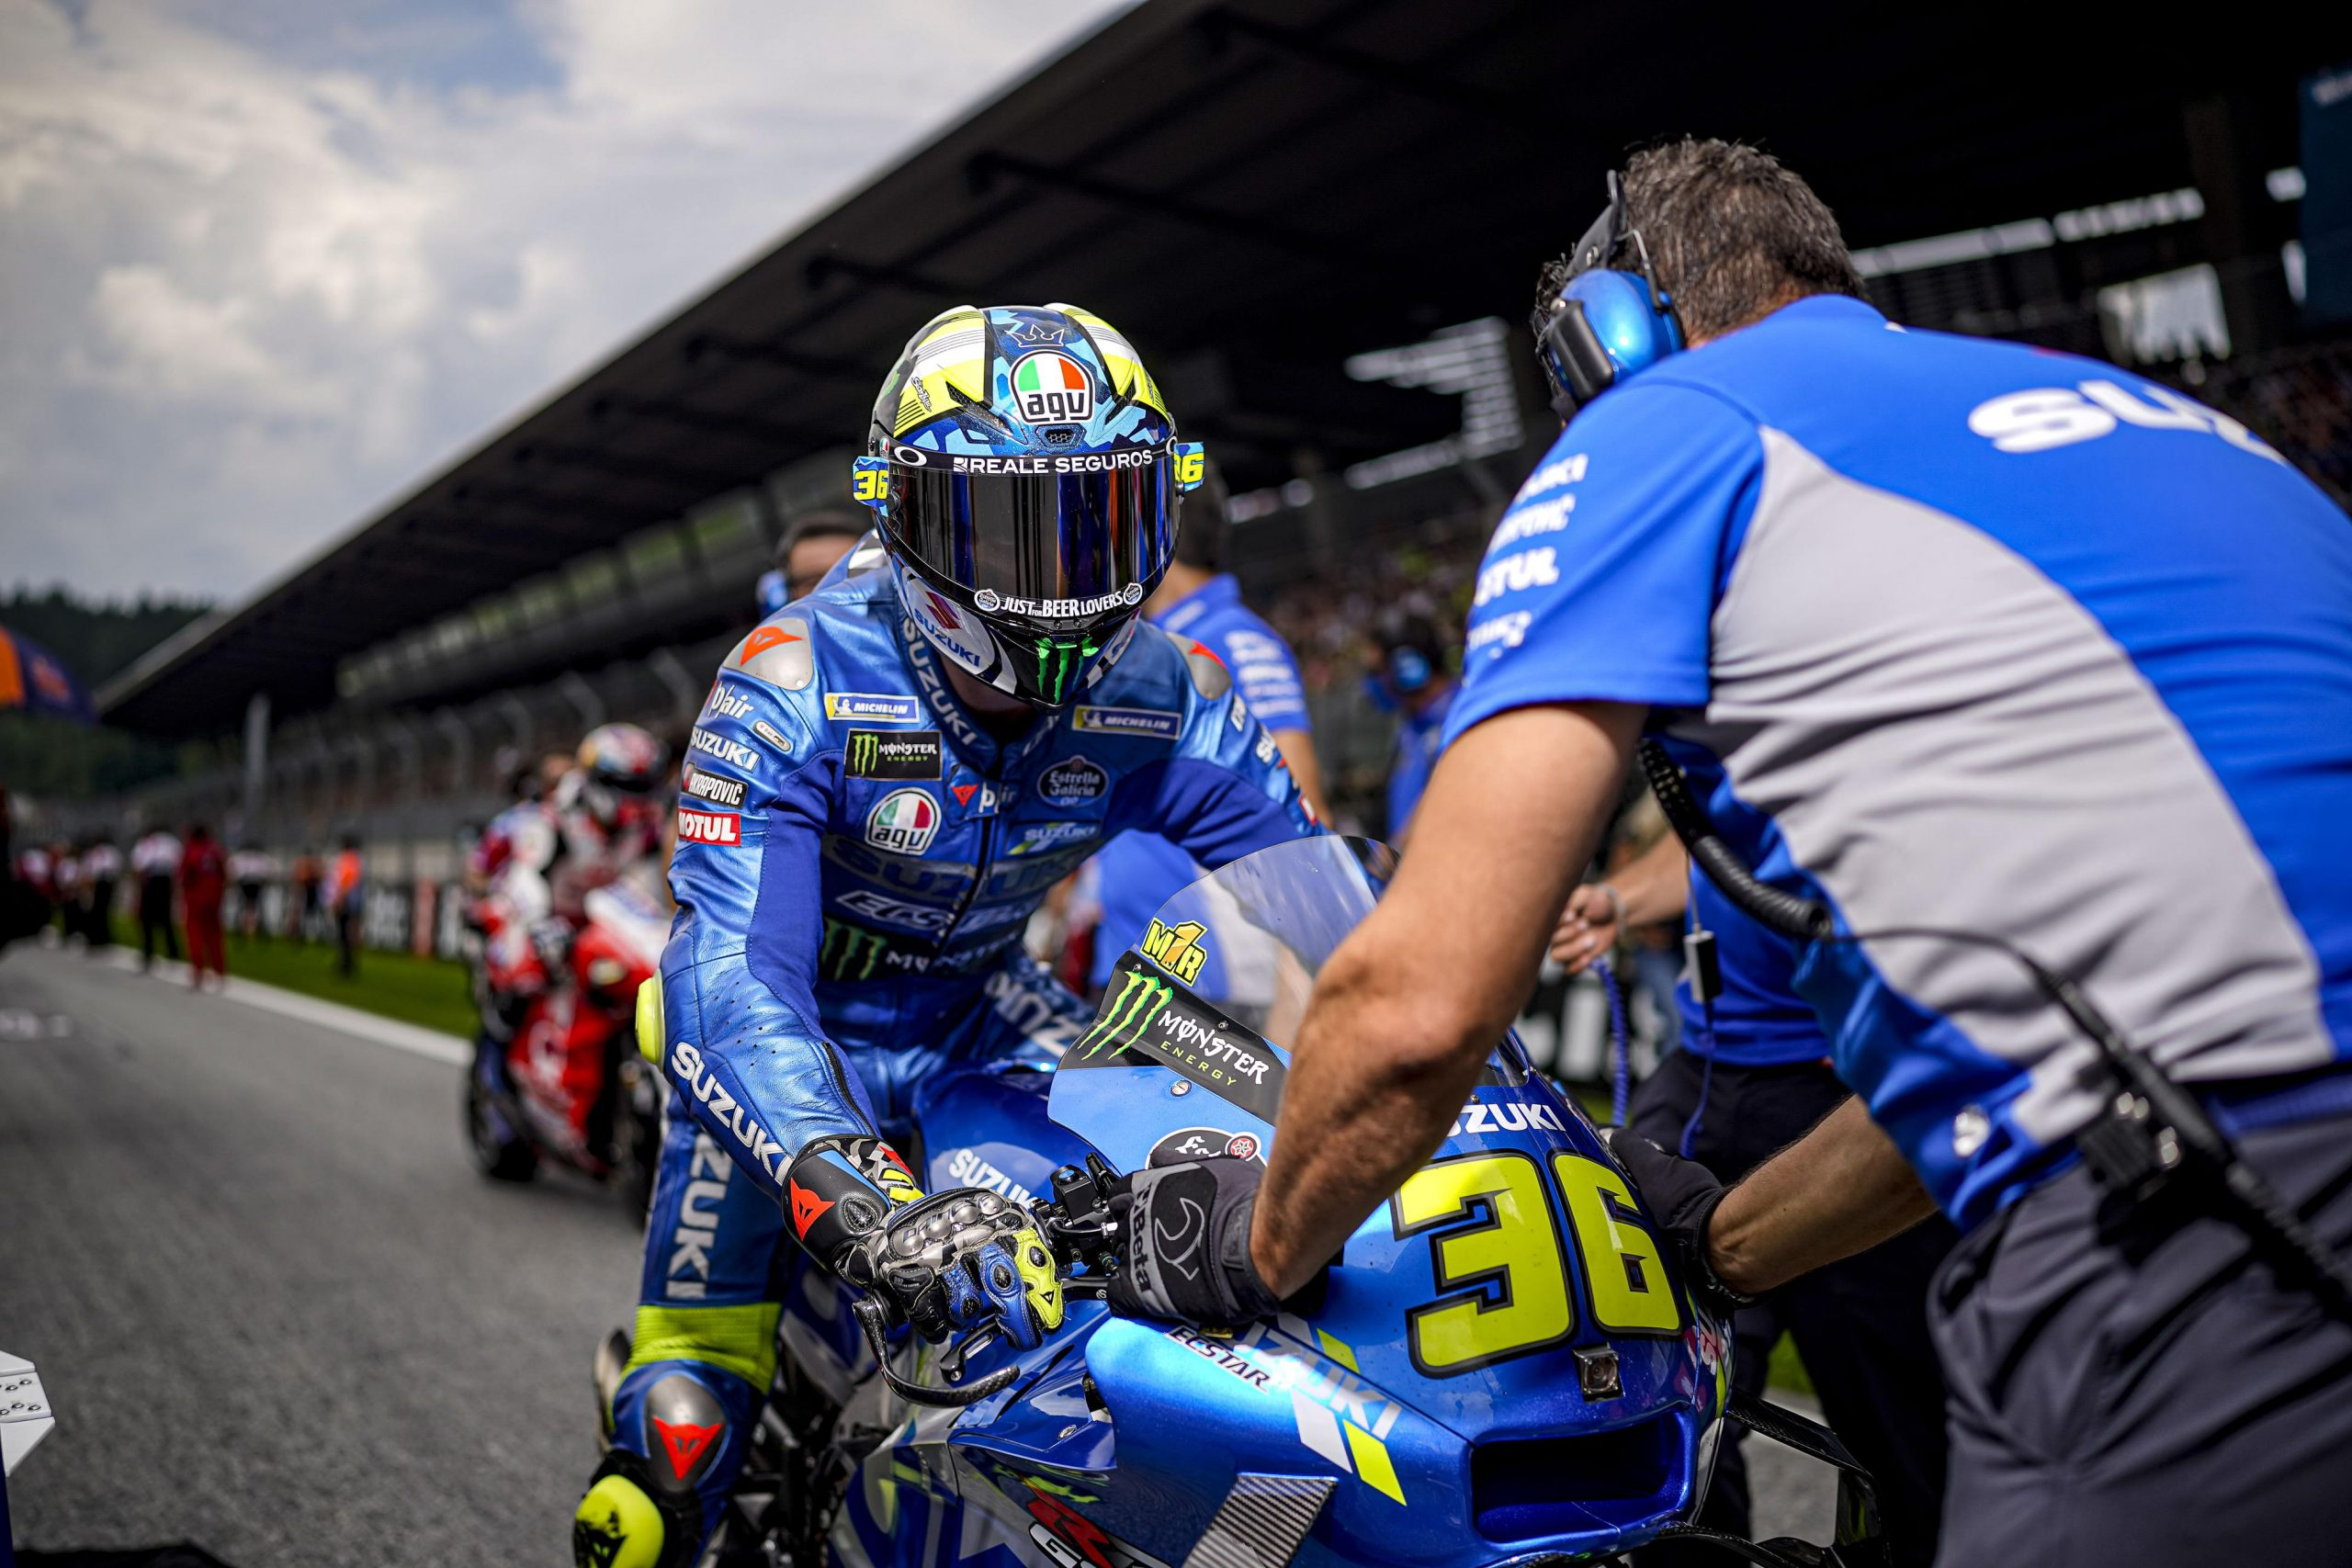 MIR TAKES FOURTH IN TUMULTUOUS AND TRICKY AUSTRIAN GP